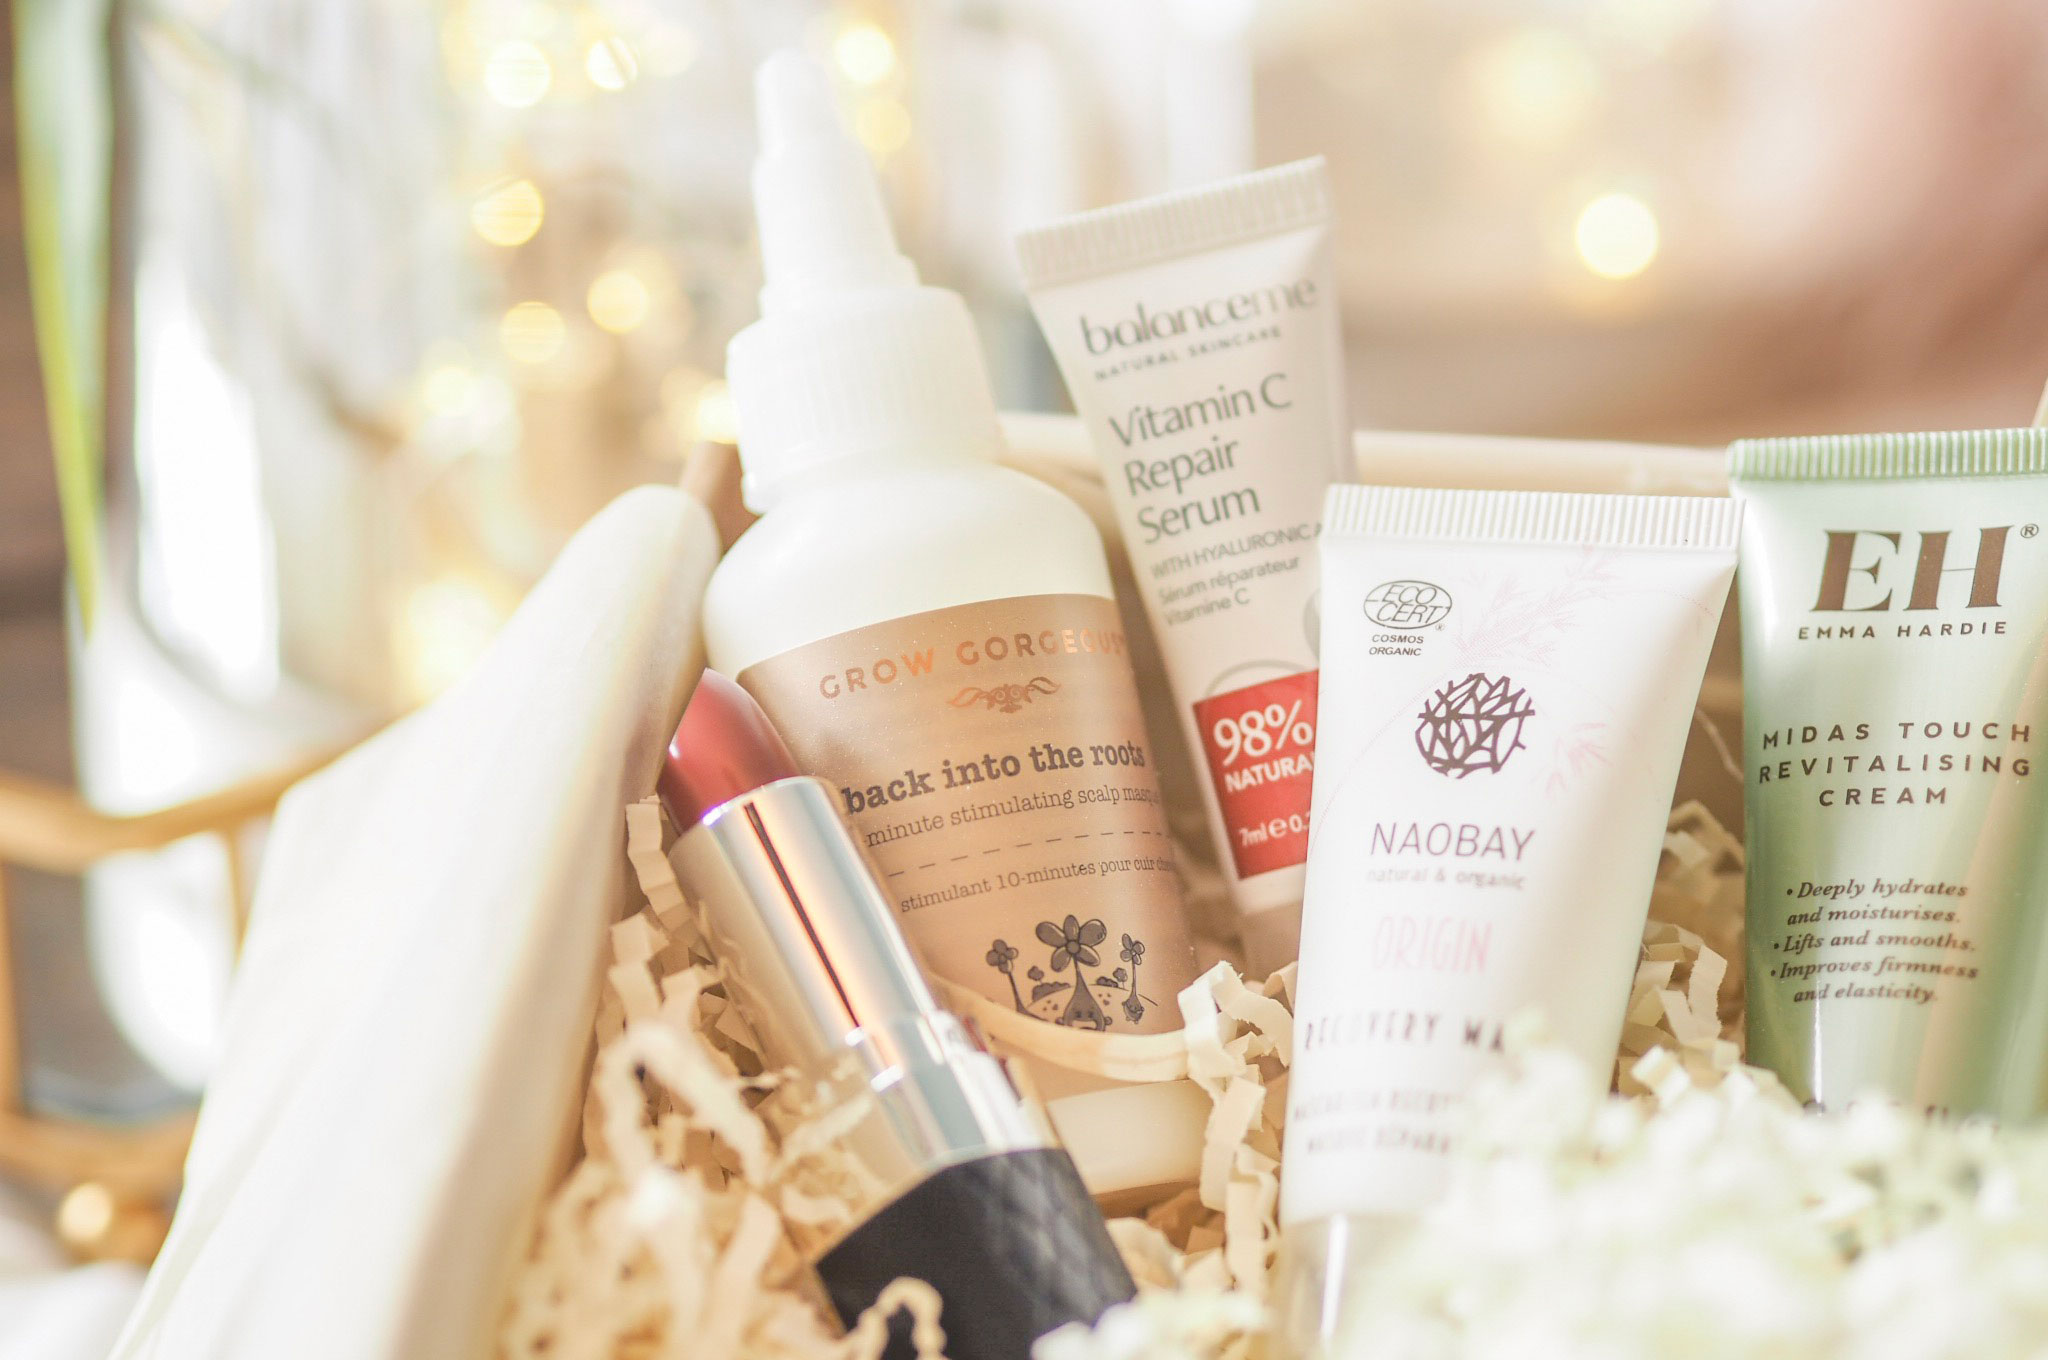 Look Fantastic Raw Edit Box Review